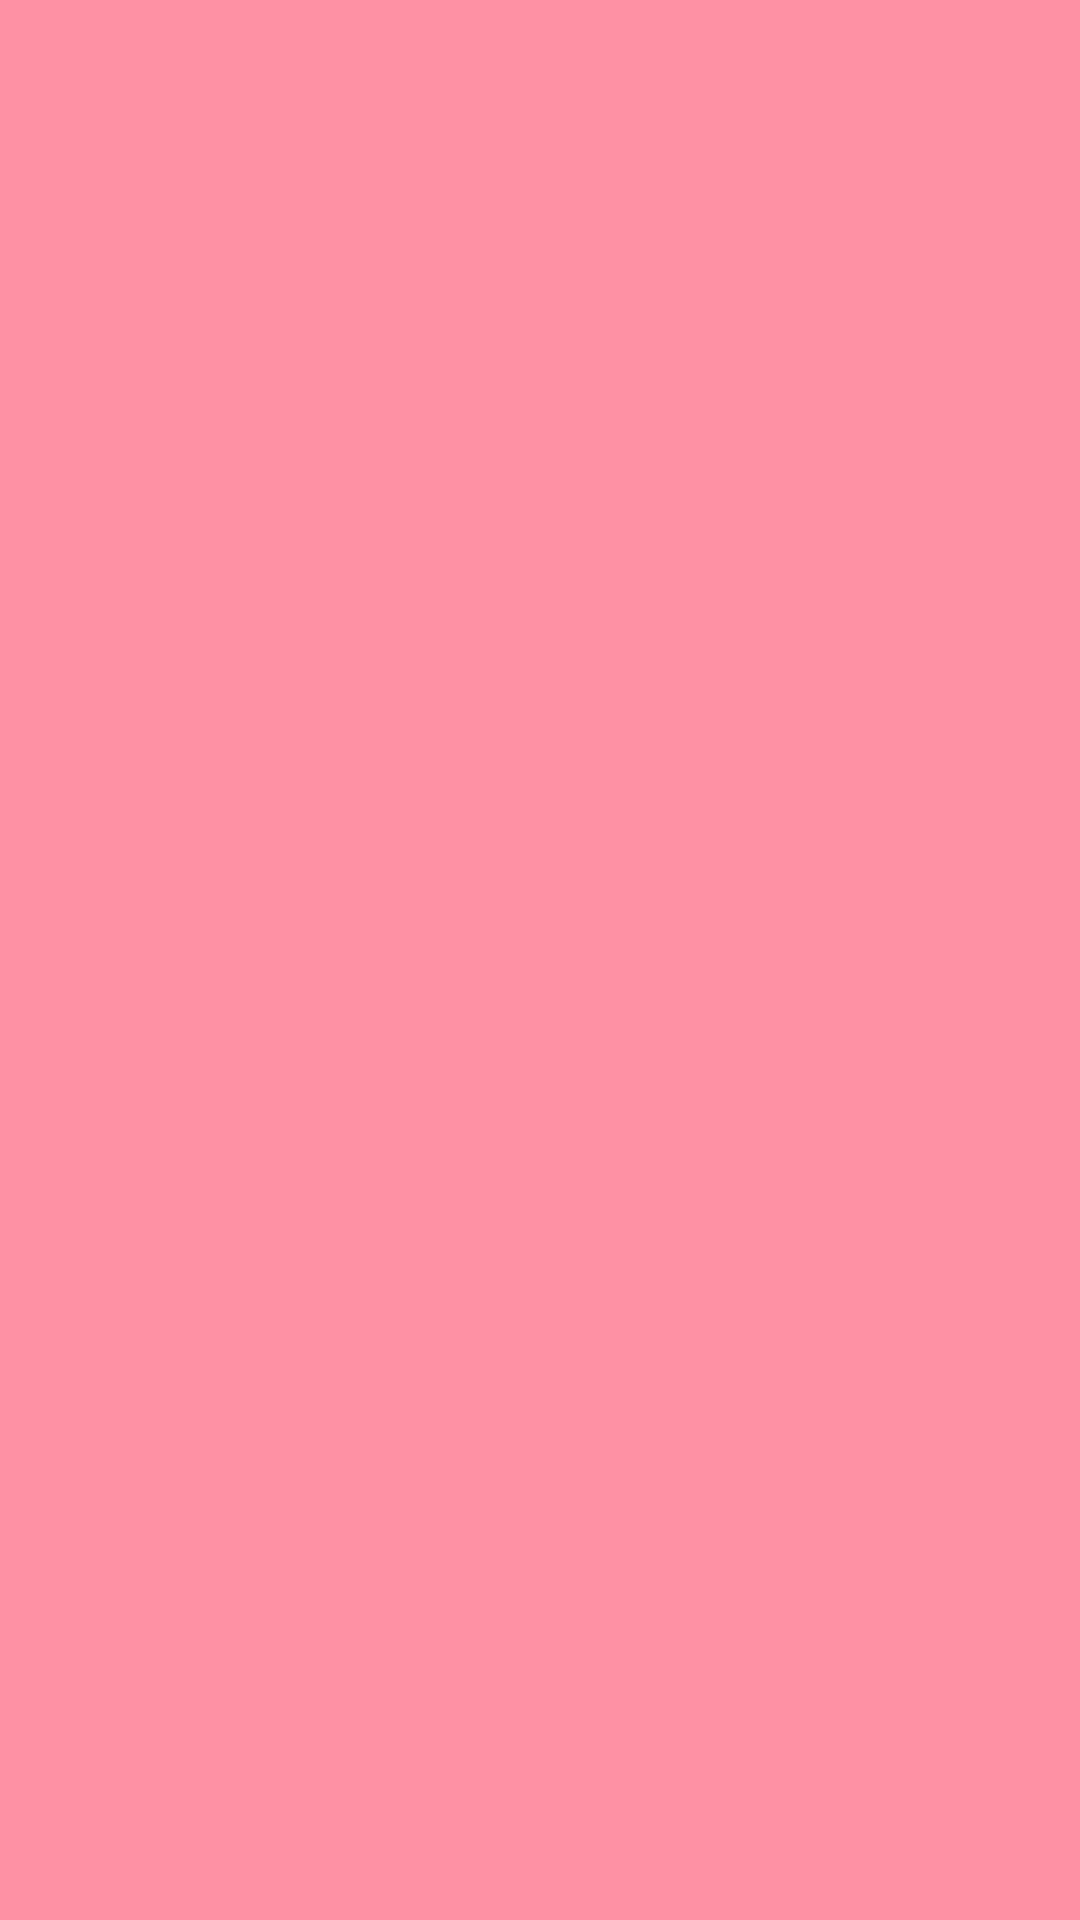 1080x1920 Salmon Pink Solid Color Background